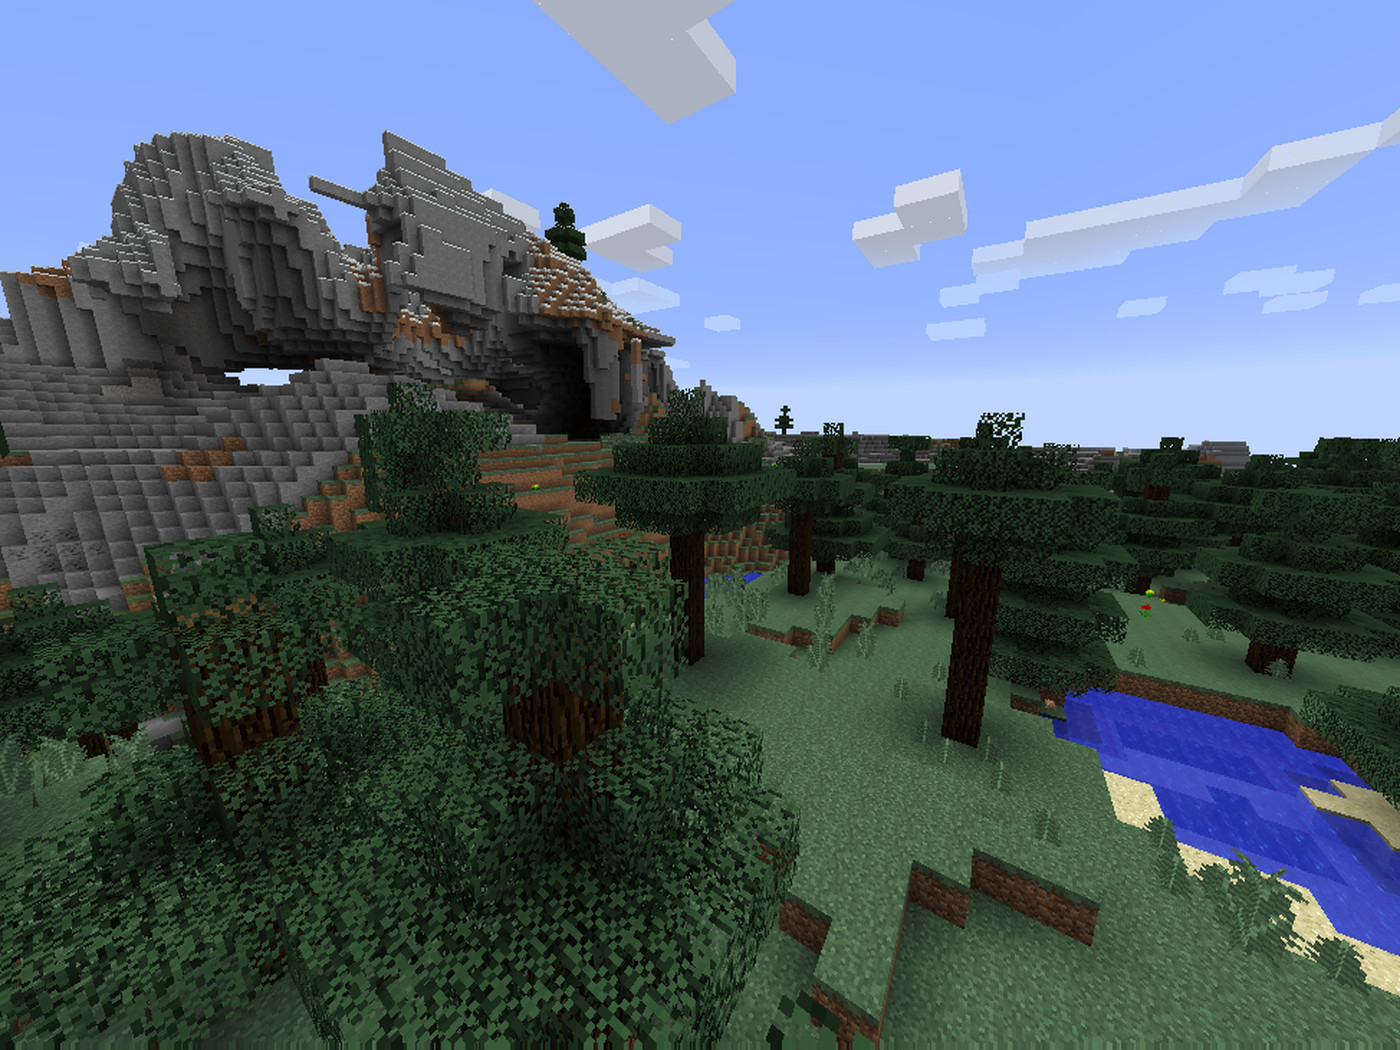 Minecraft Bedrock vs. Java: Which is the right version for you